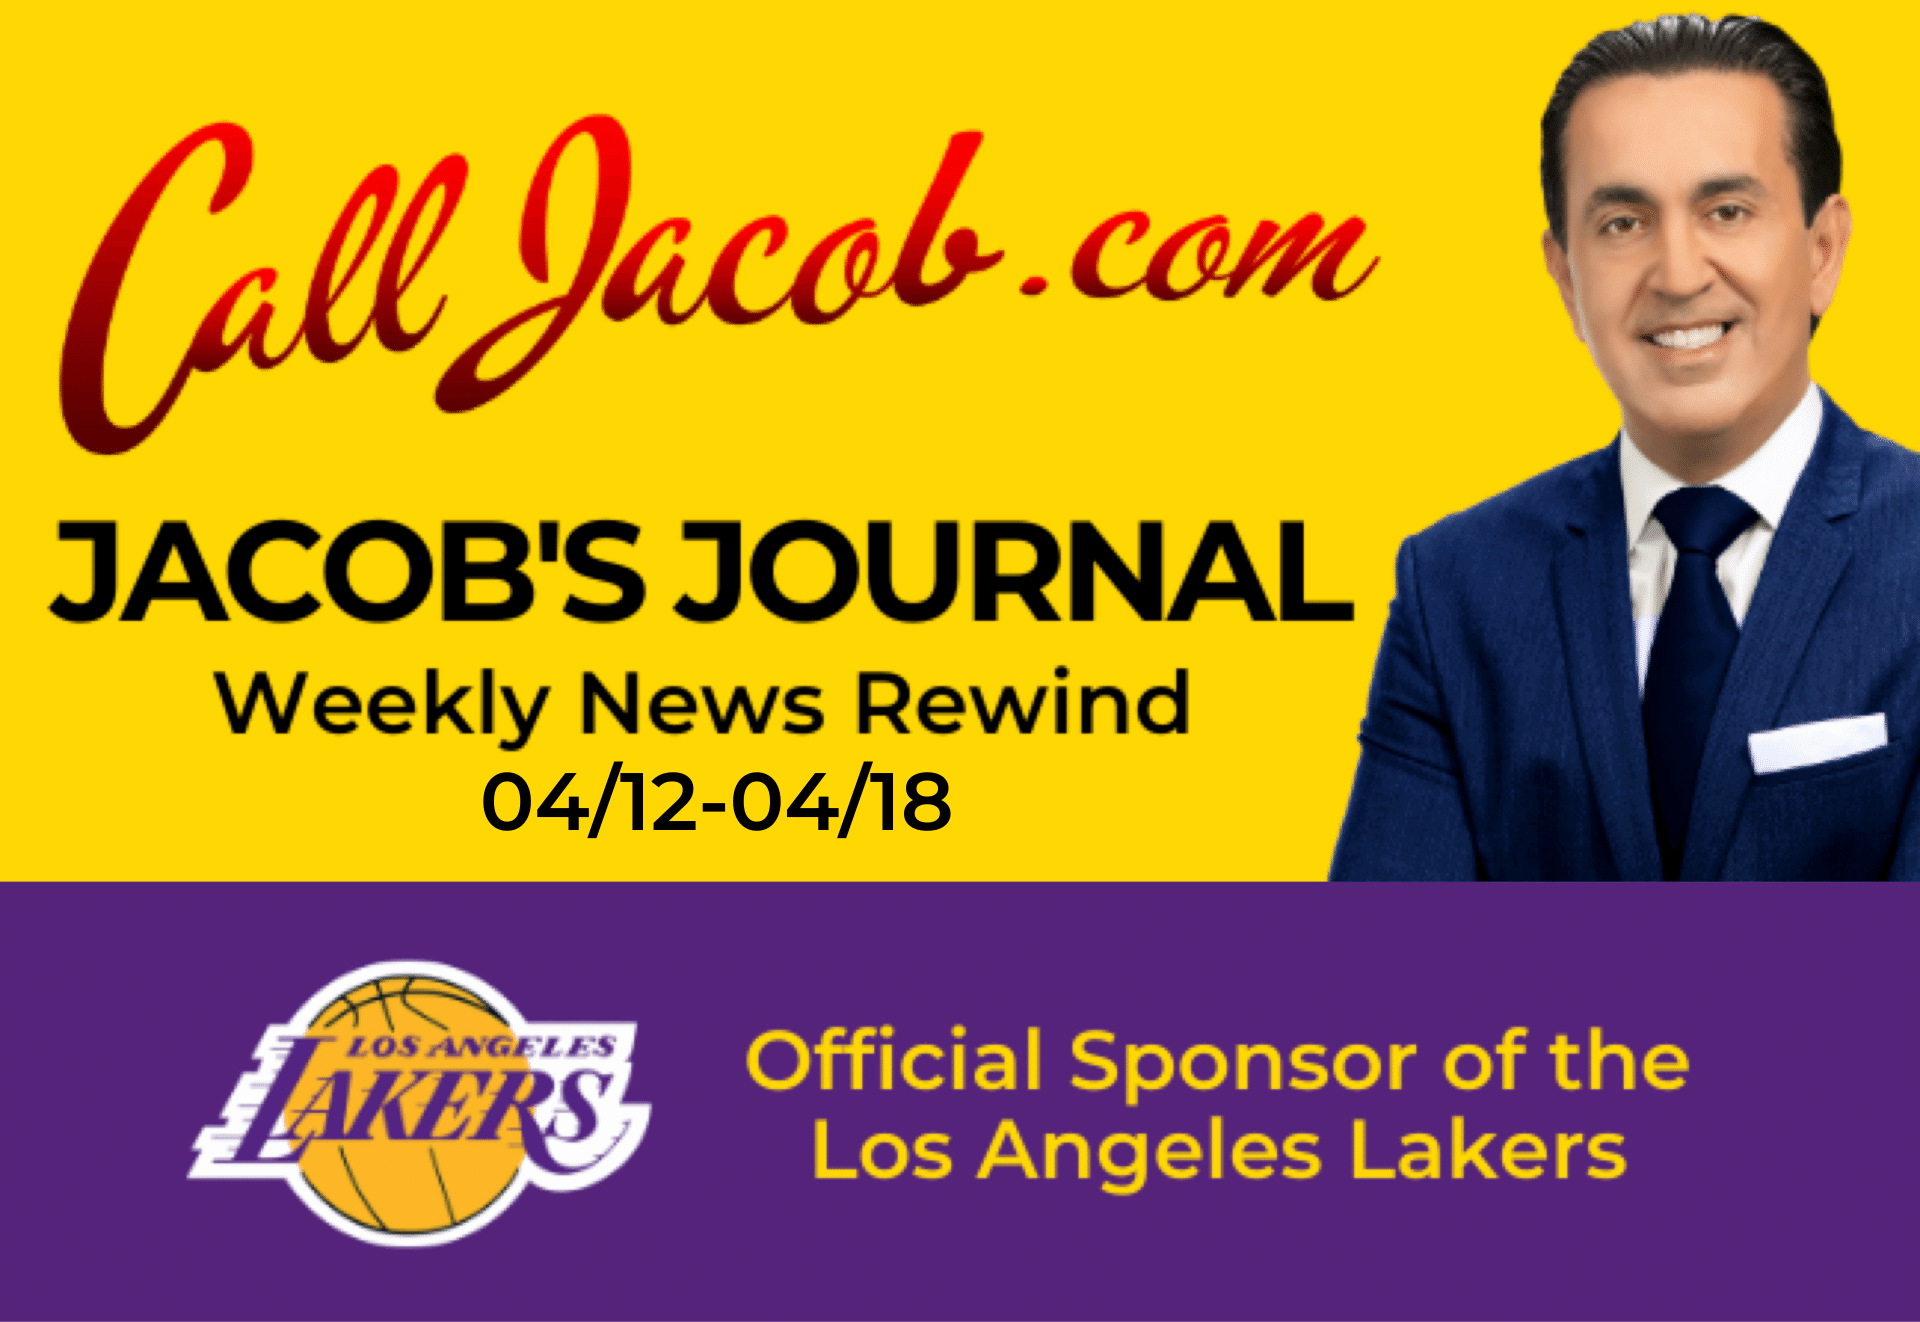 JacobsJournalWeeklyNewsRewind April 12th to April 18th 2021